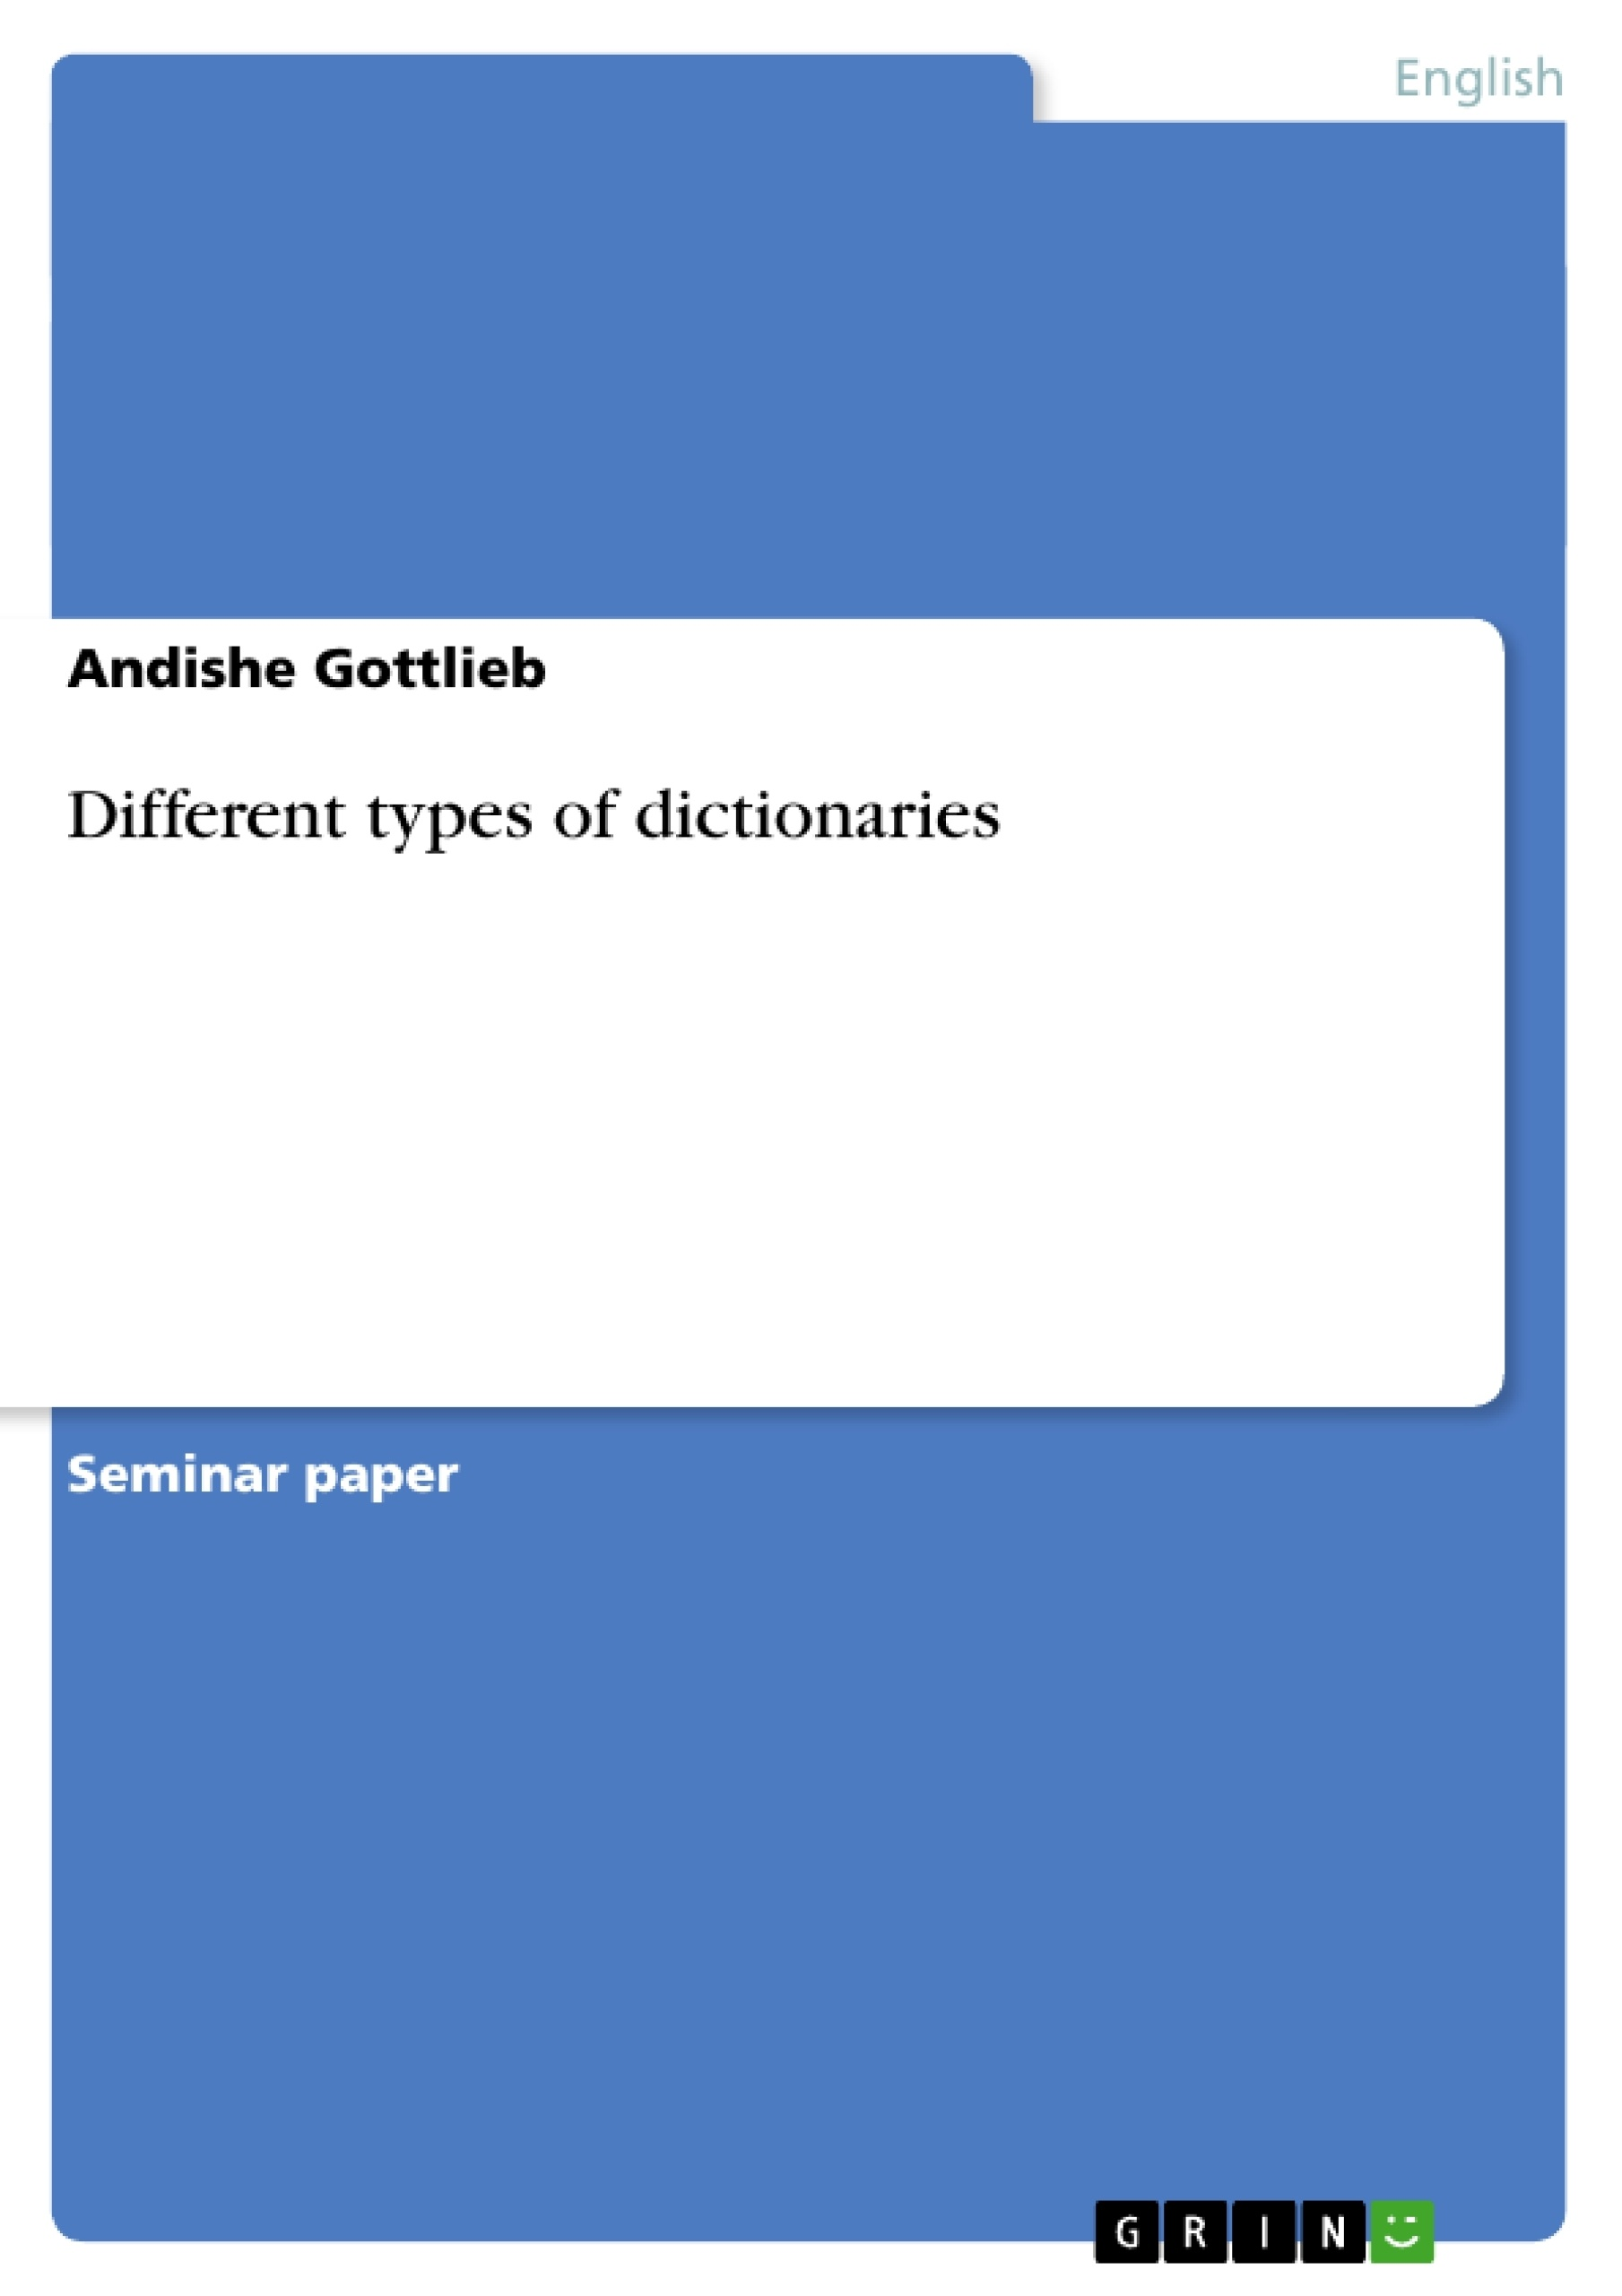 Title: Different types of dictionaries